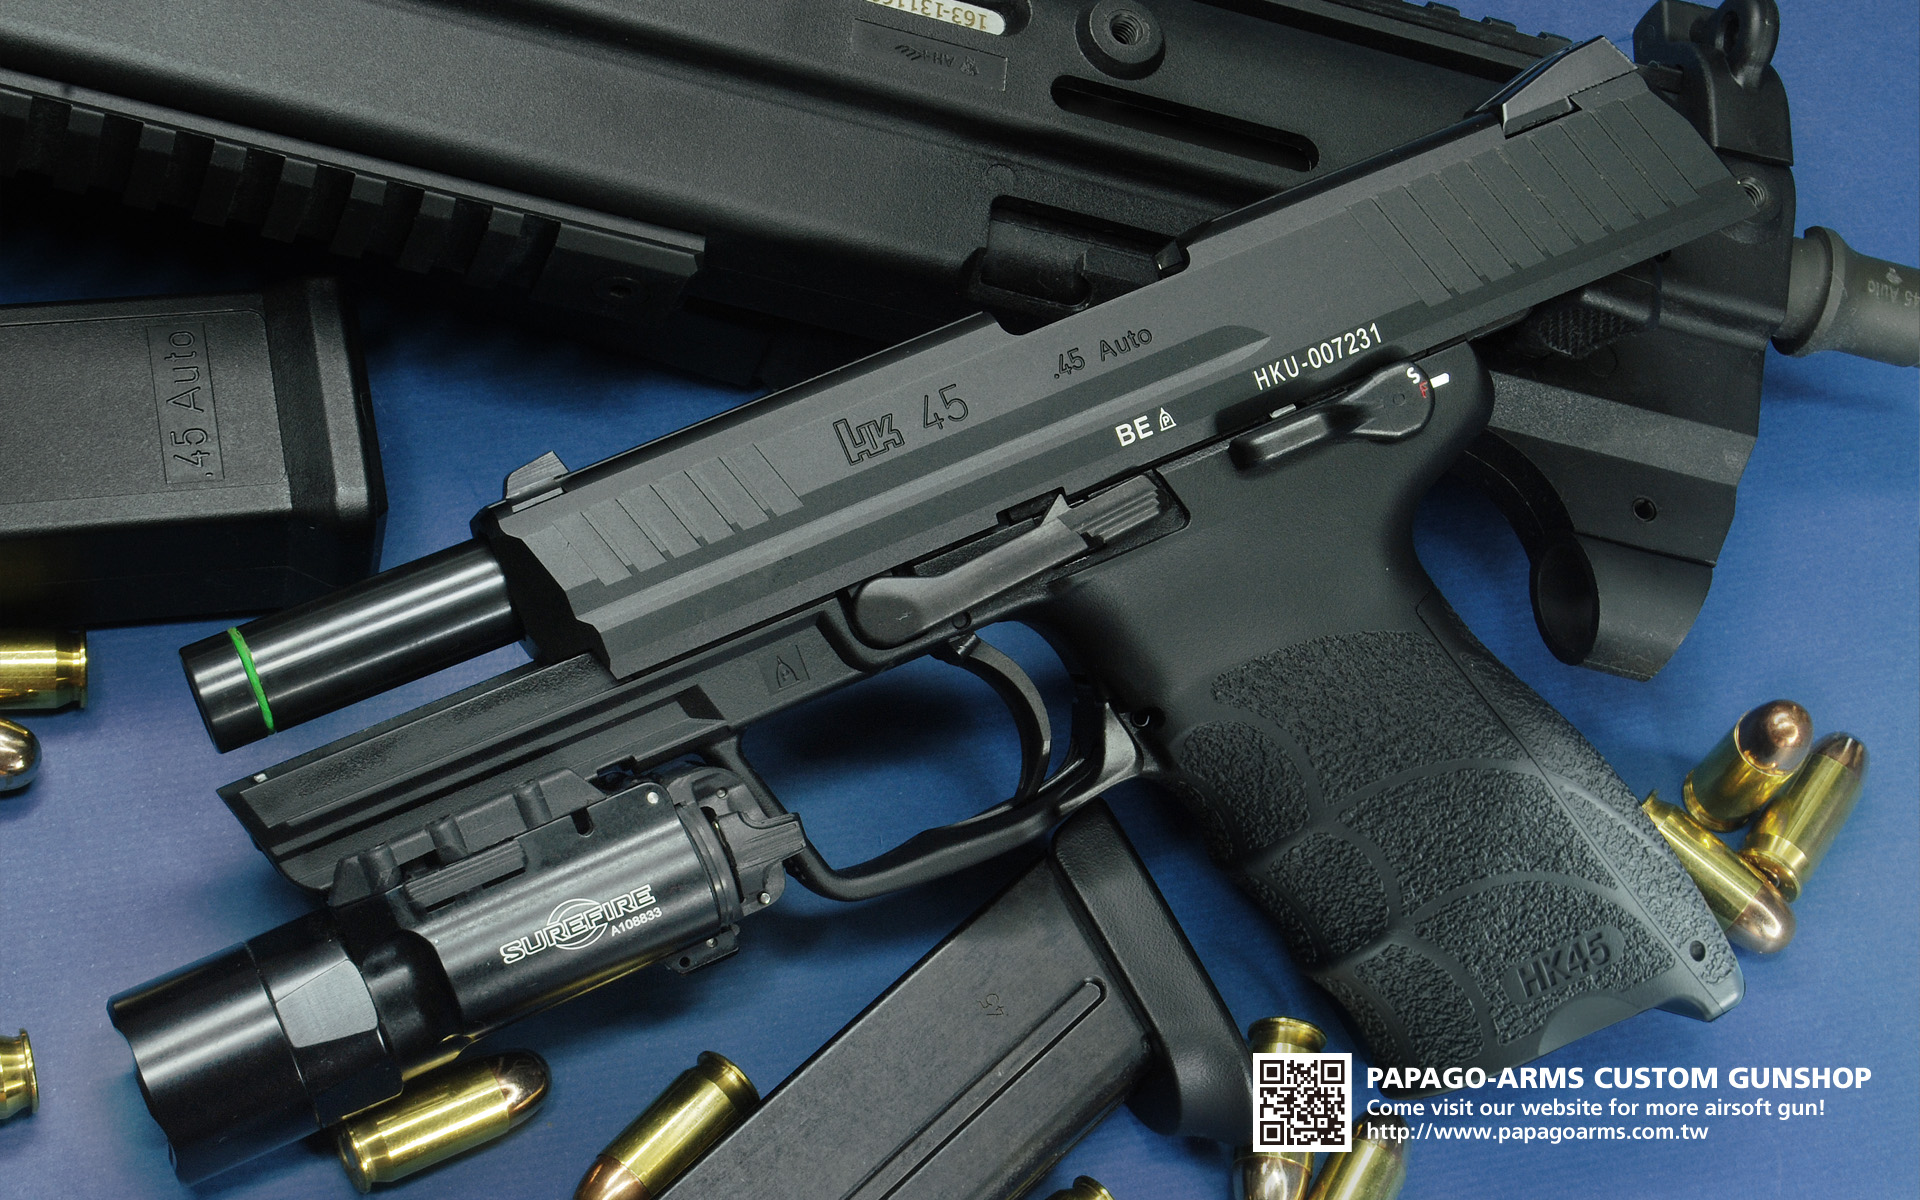 Alfa img - Showing > HK45 Wallpaper